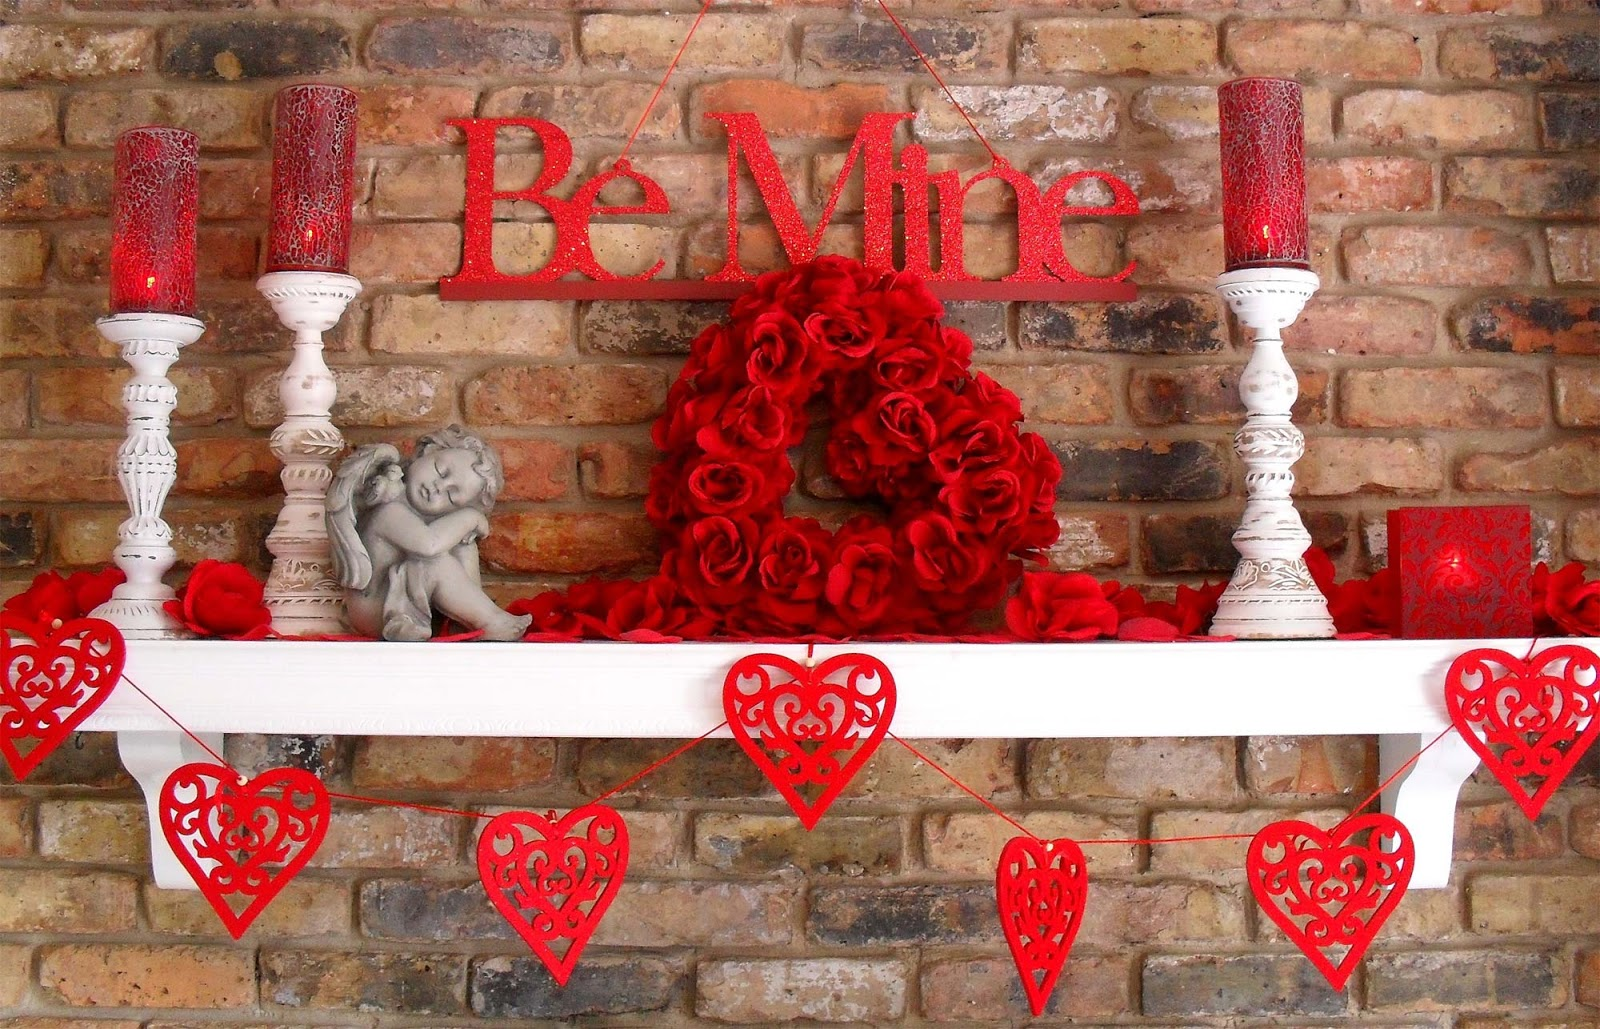 Valentine 39 s day decorations ideas 2016 to decorate bedroom for Home decorations for valentine s day